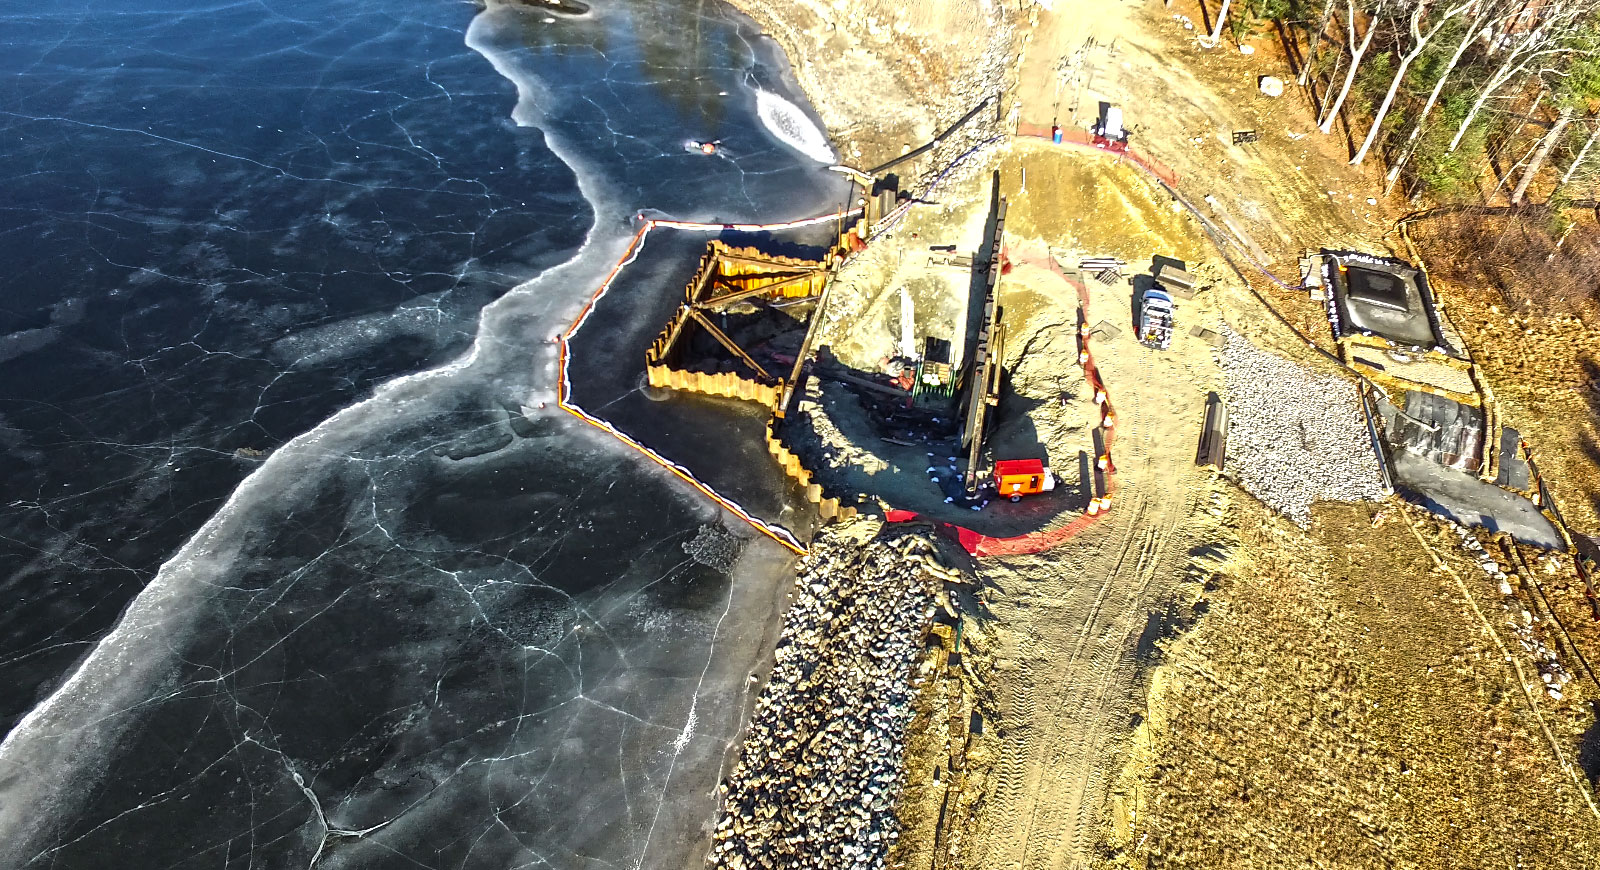 overhead view of construction site next to body of water